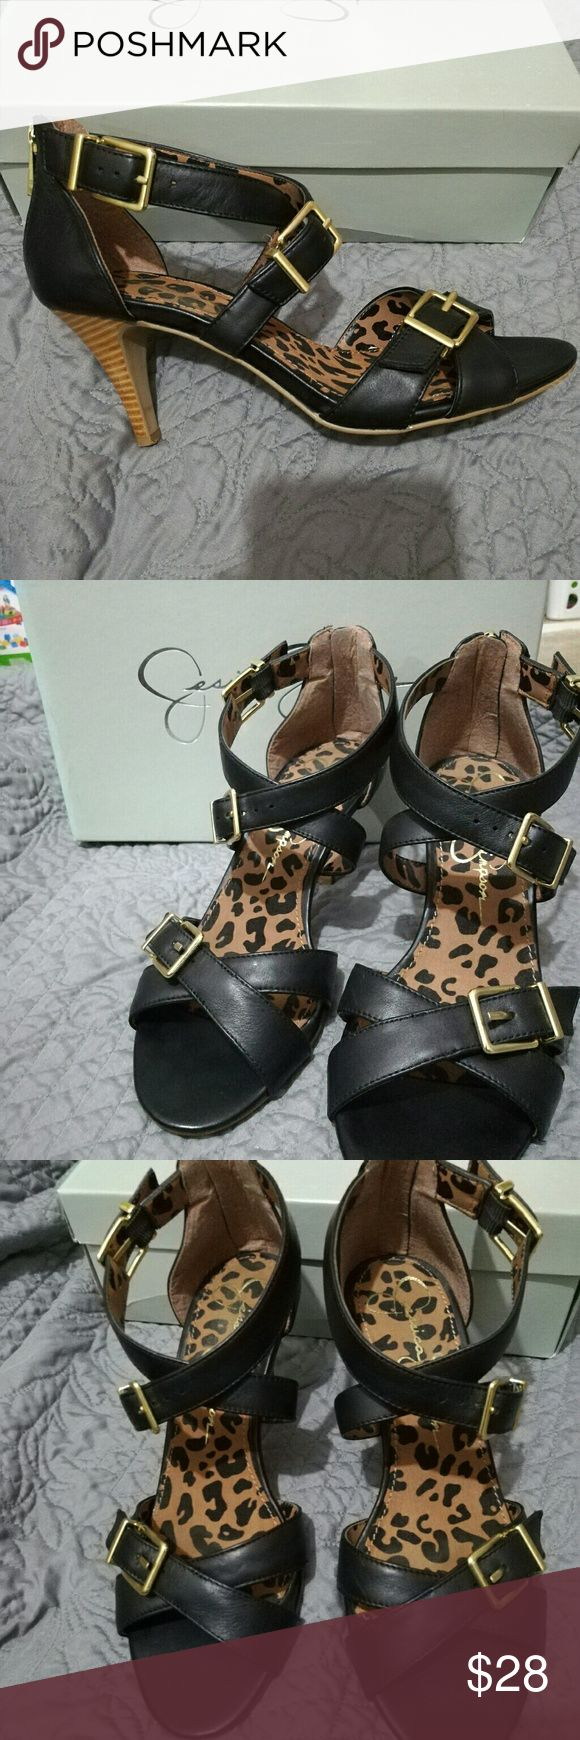 Jessica Simpson Open Toe Heels Jessica Simpson Size 8 Gold accents Adjustable Straps Shoes Heels